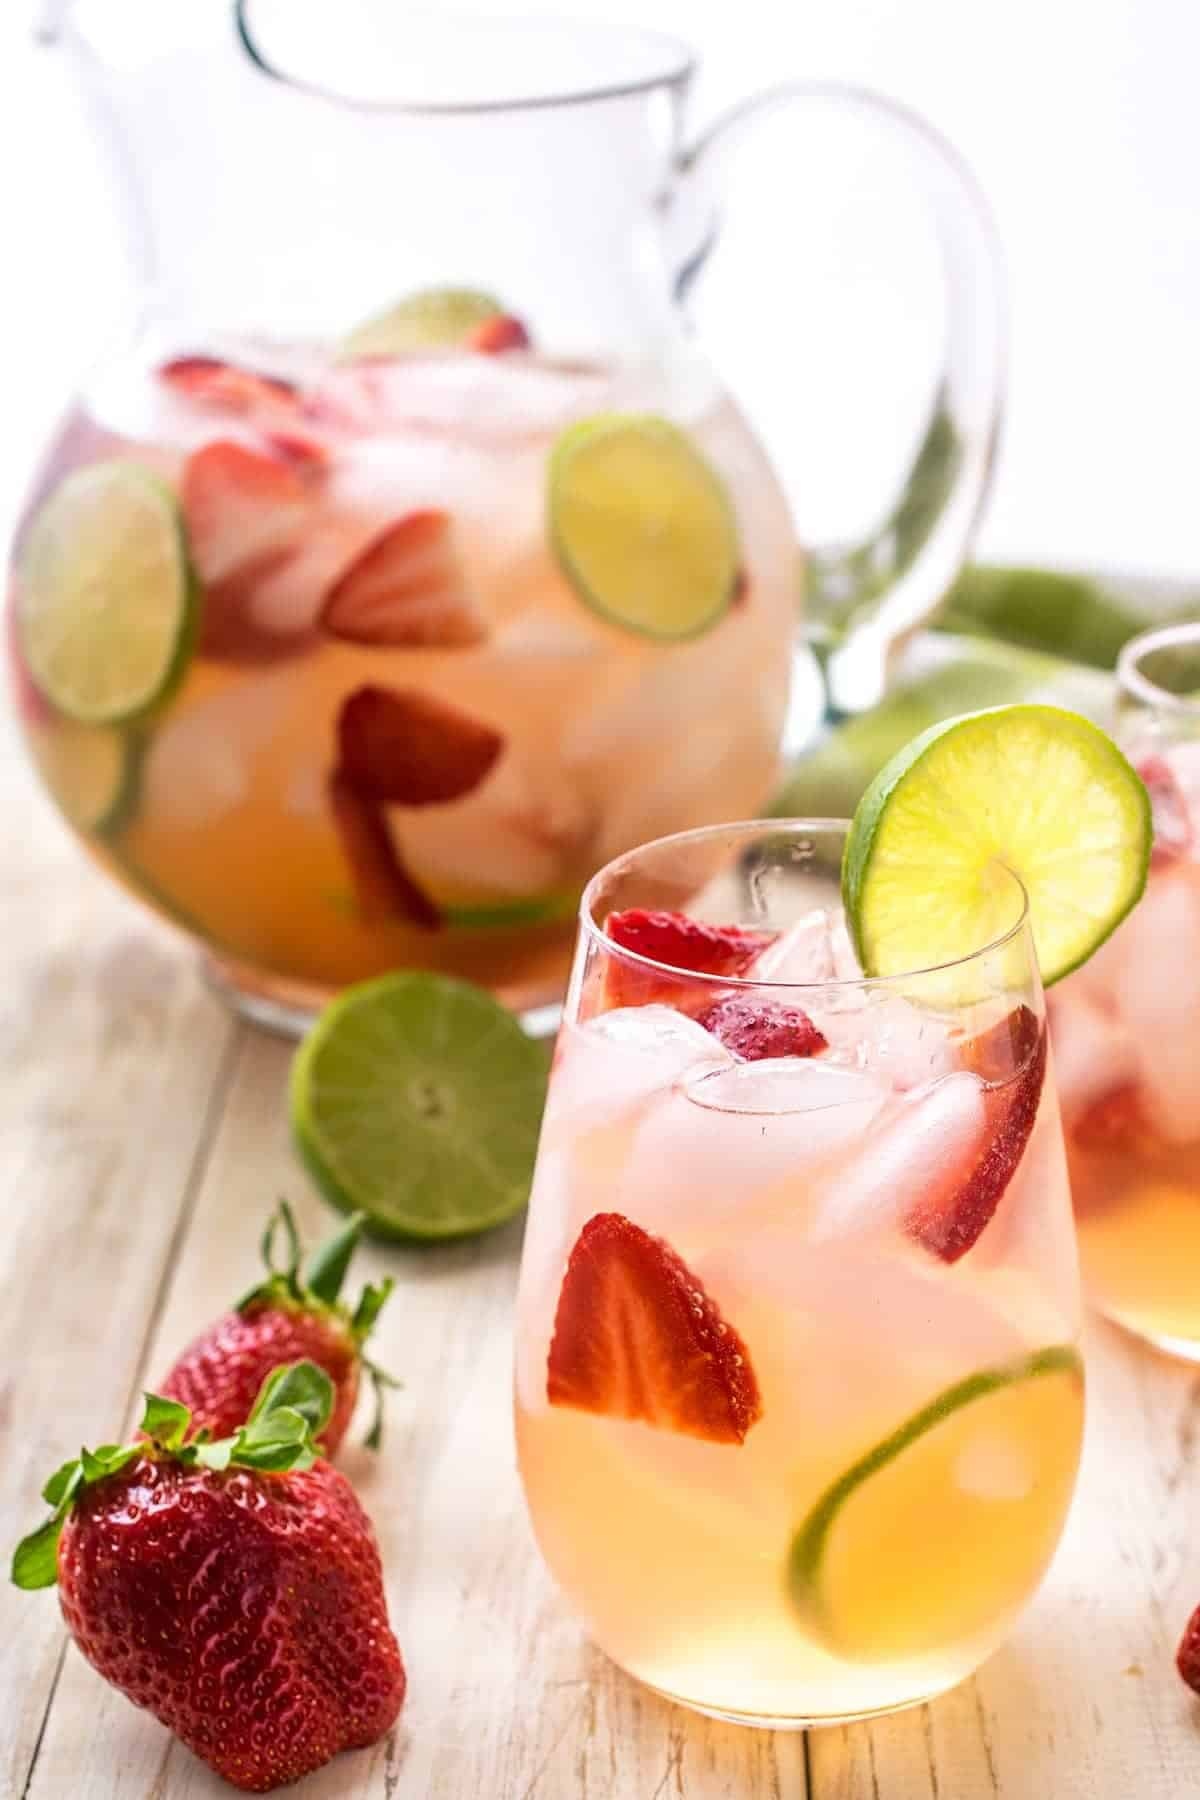 Strawberry sangria in a glass with lime garnish. Pitcher of strawberry sangria in the background. Whole strawberry and half lime on table top.